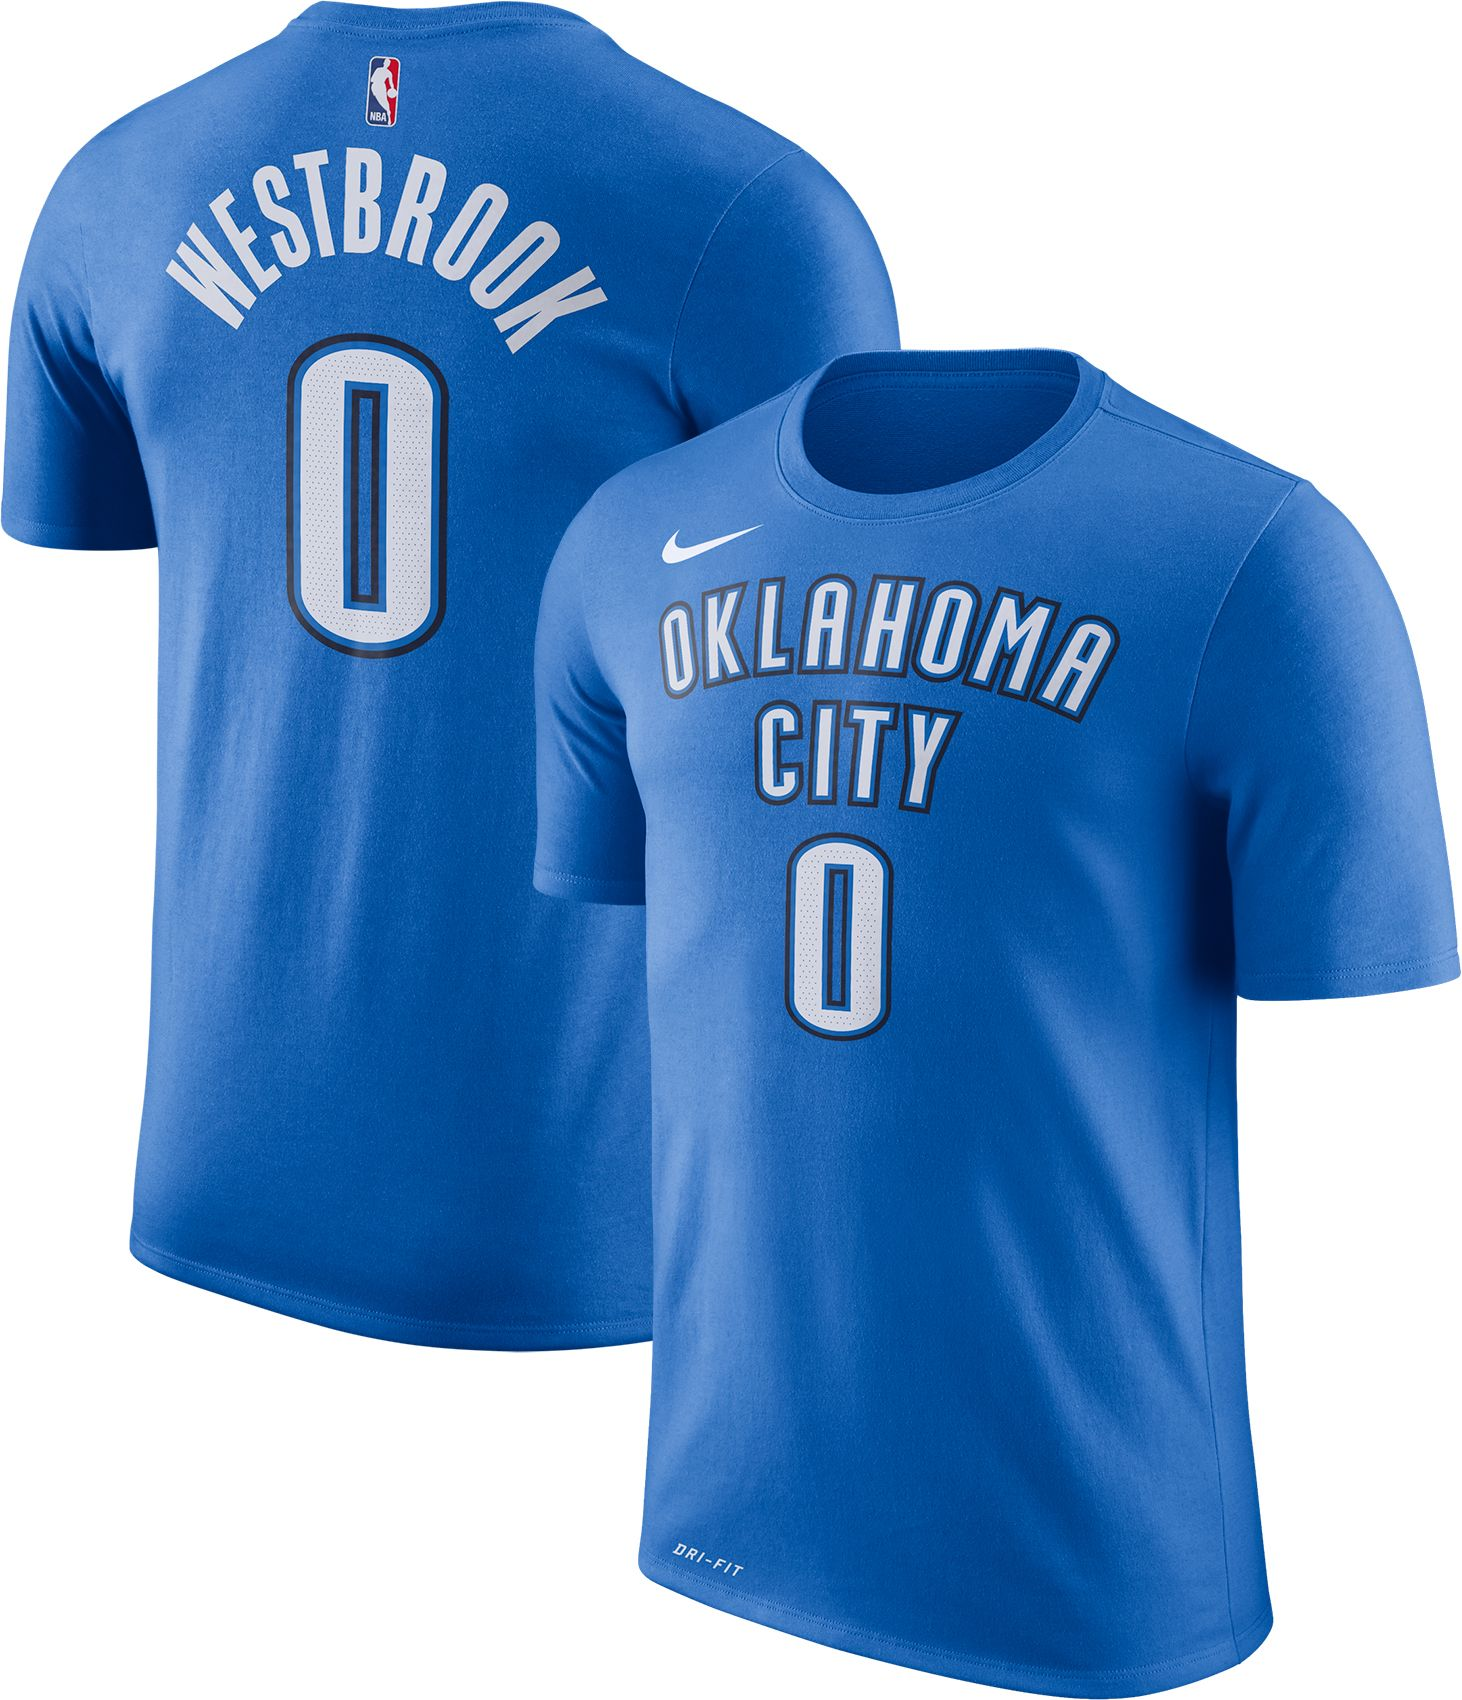 new concept 91eeb e0bf1 westbrook jersey for kids